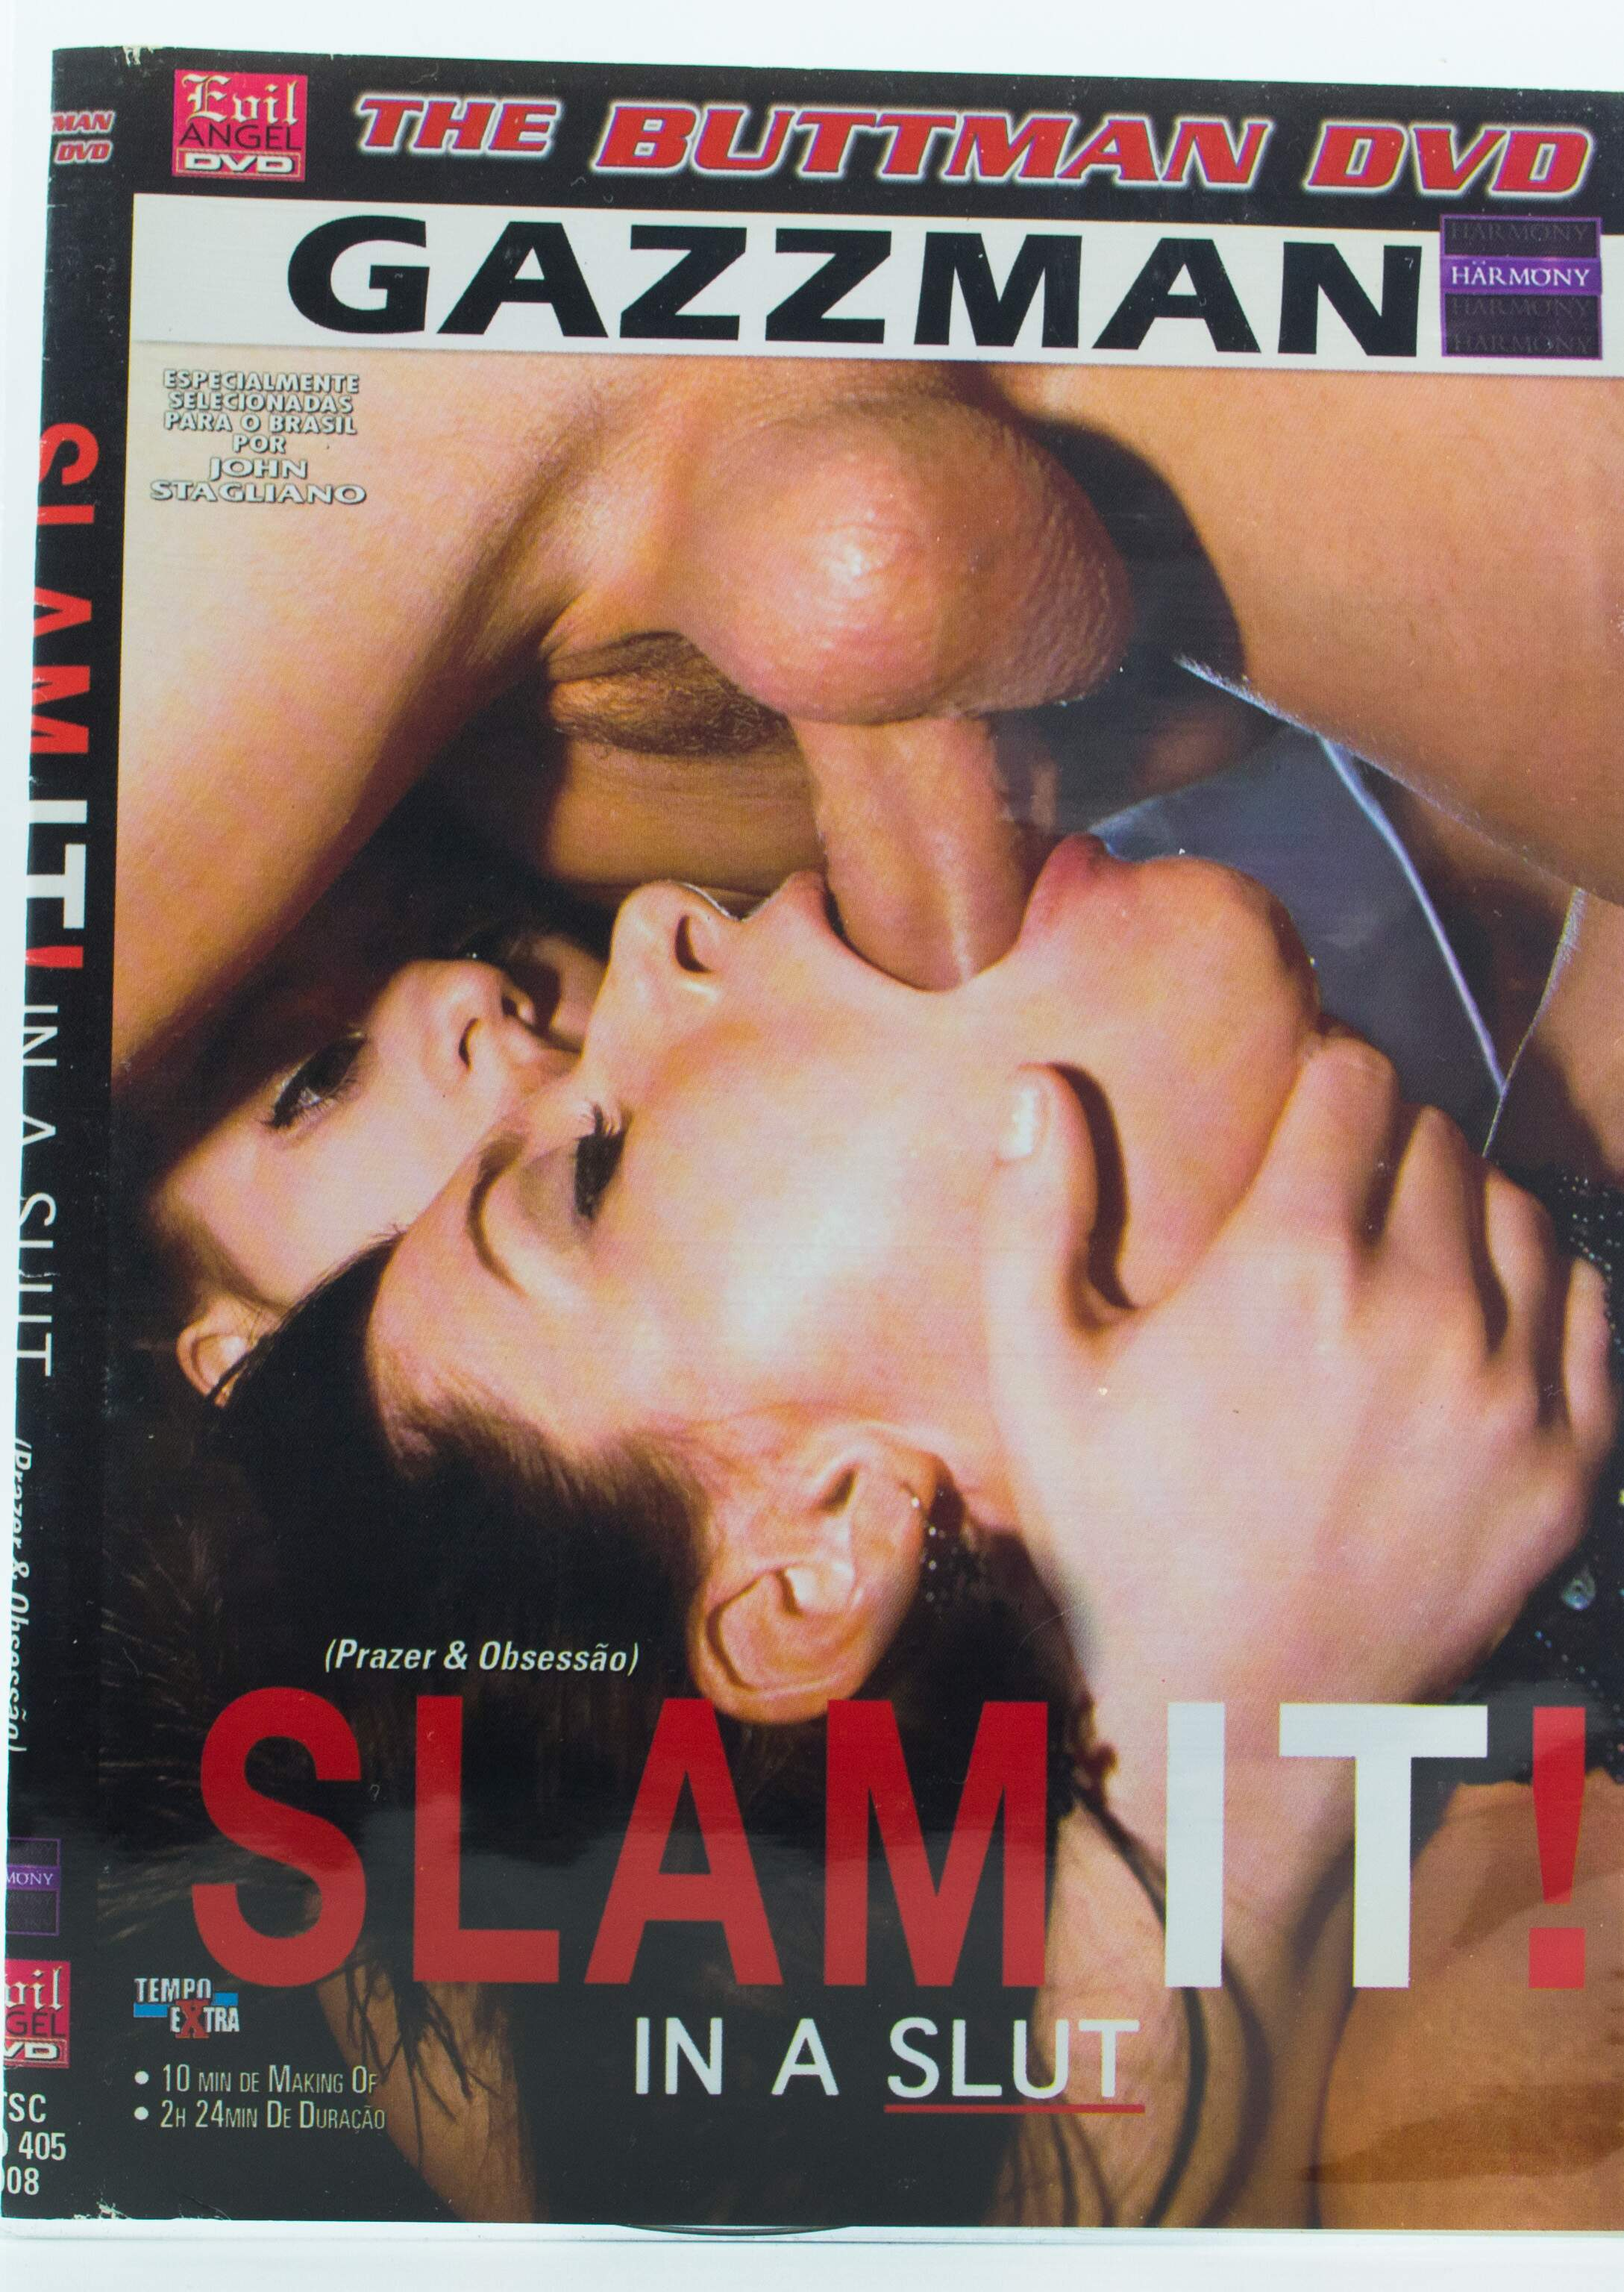 The Buttman DVD - Slam It! In a Slut (Prazer e Obsessão)